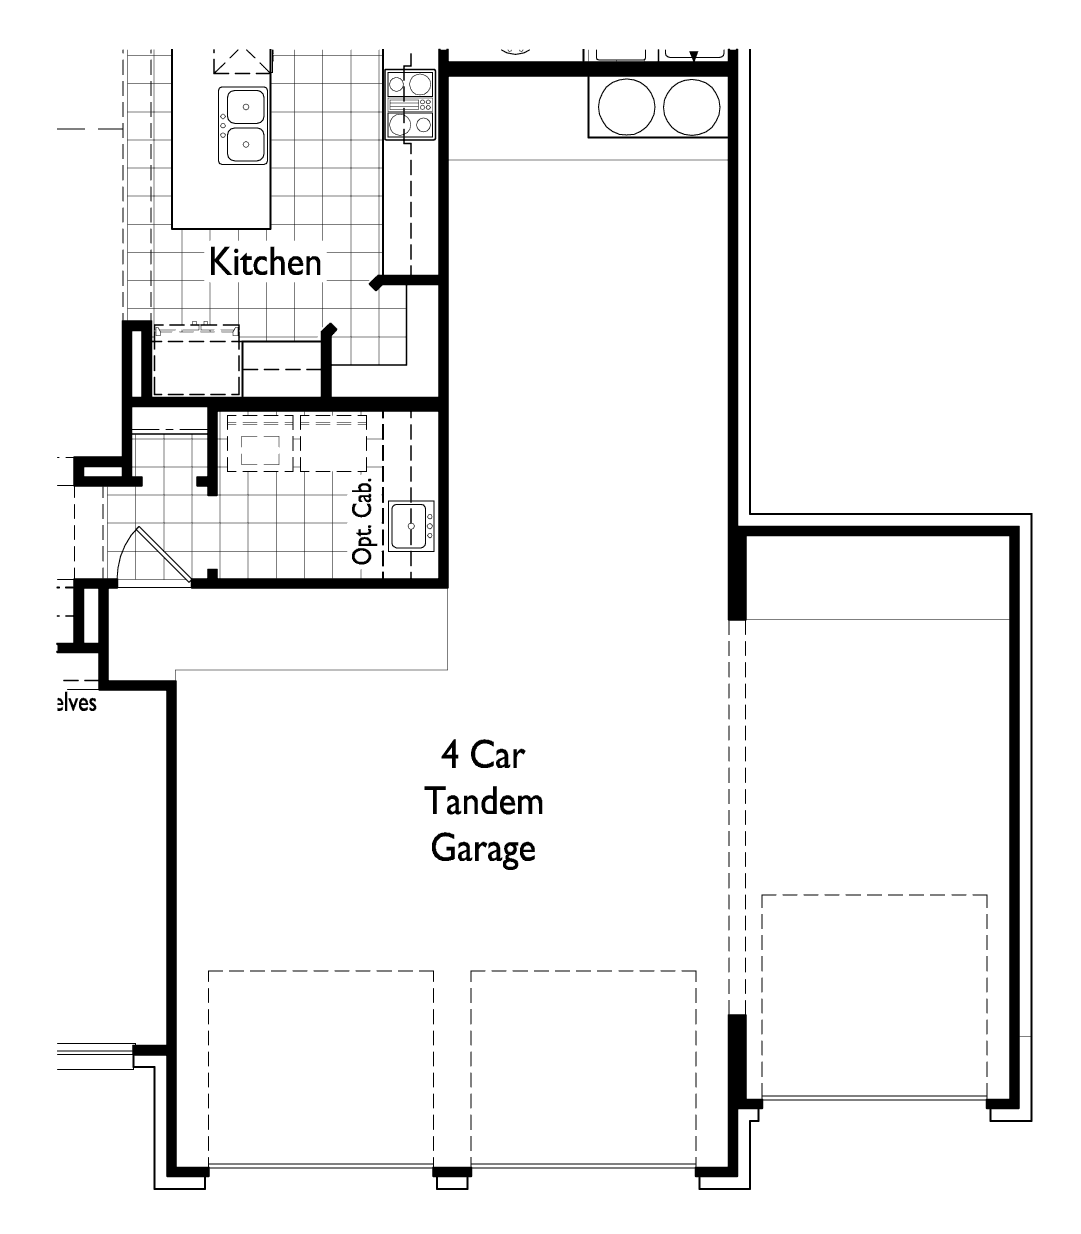 4 car tandem garage bing images for 4 car tandem garage